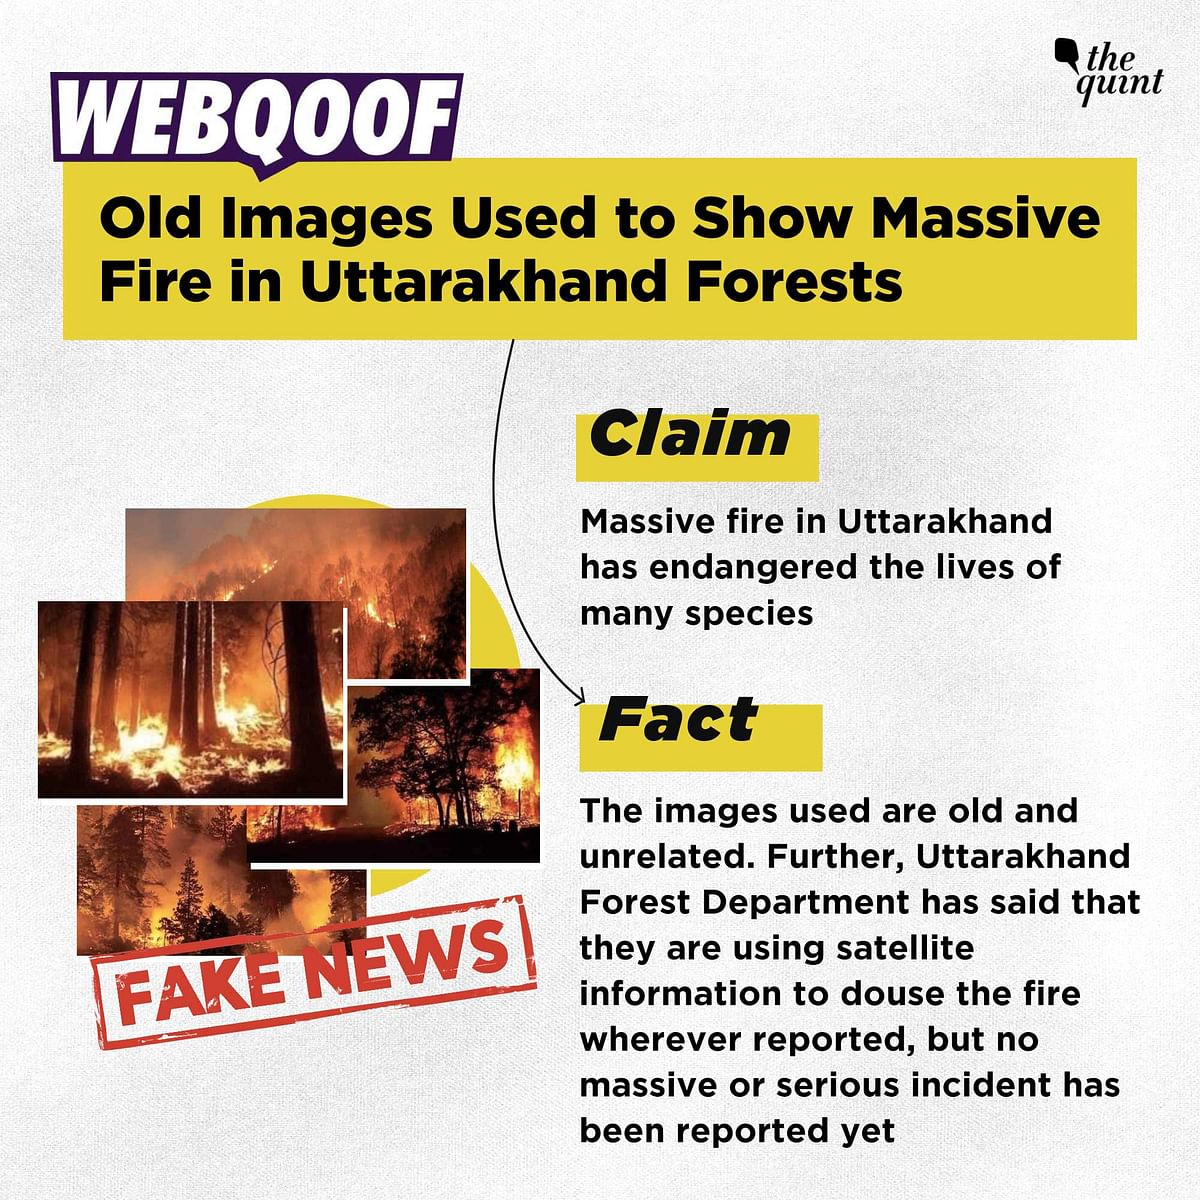 Old Images Used to Show Massive Fire in Uttarakhand Forests